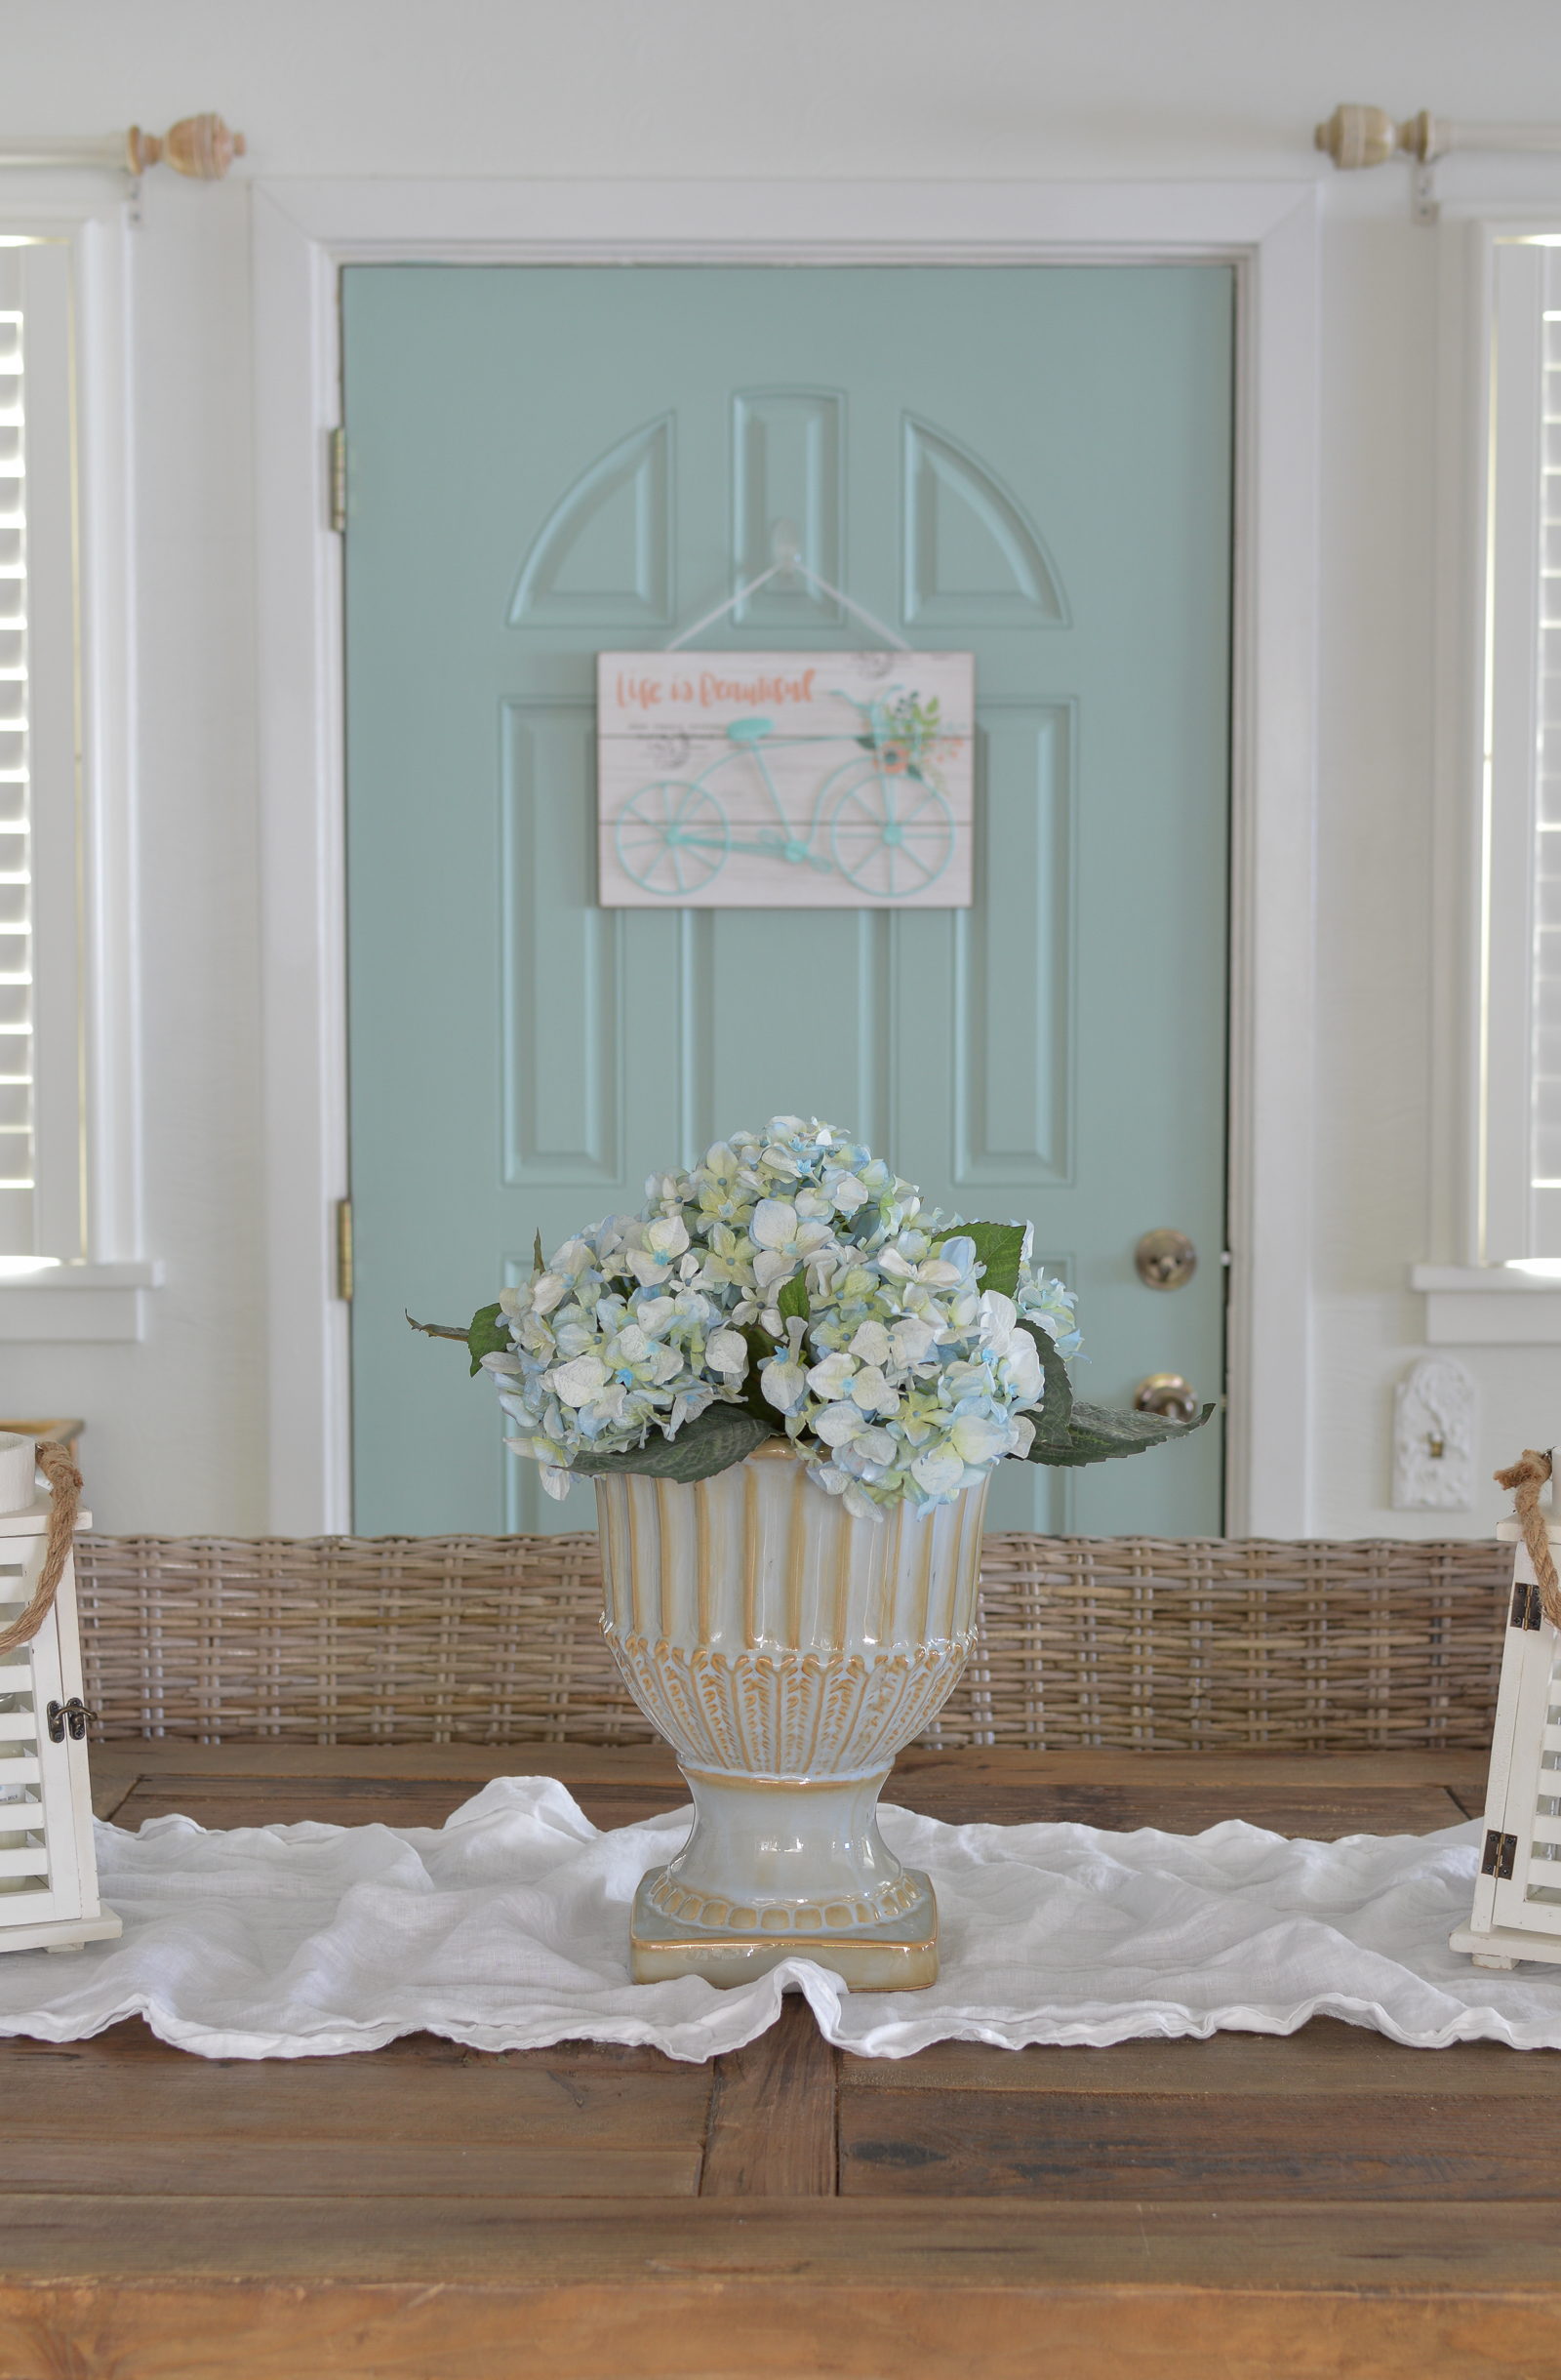 Small house causal cottage farmhouse dining room, farm table, wythe blue door, Hydrangeas | Cottage Dining Room and Catch Up at www.foxhollowcottage.com